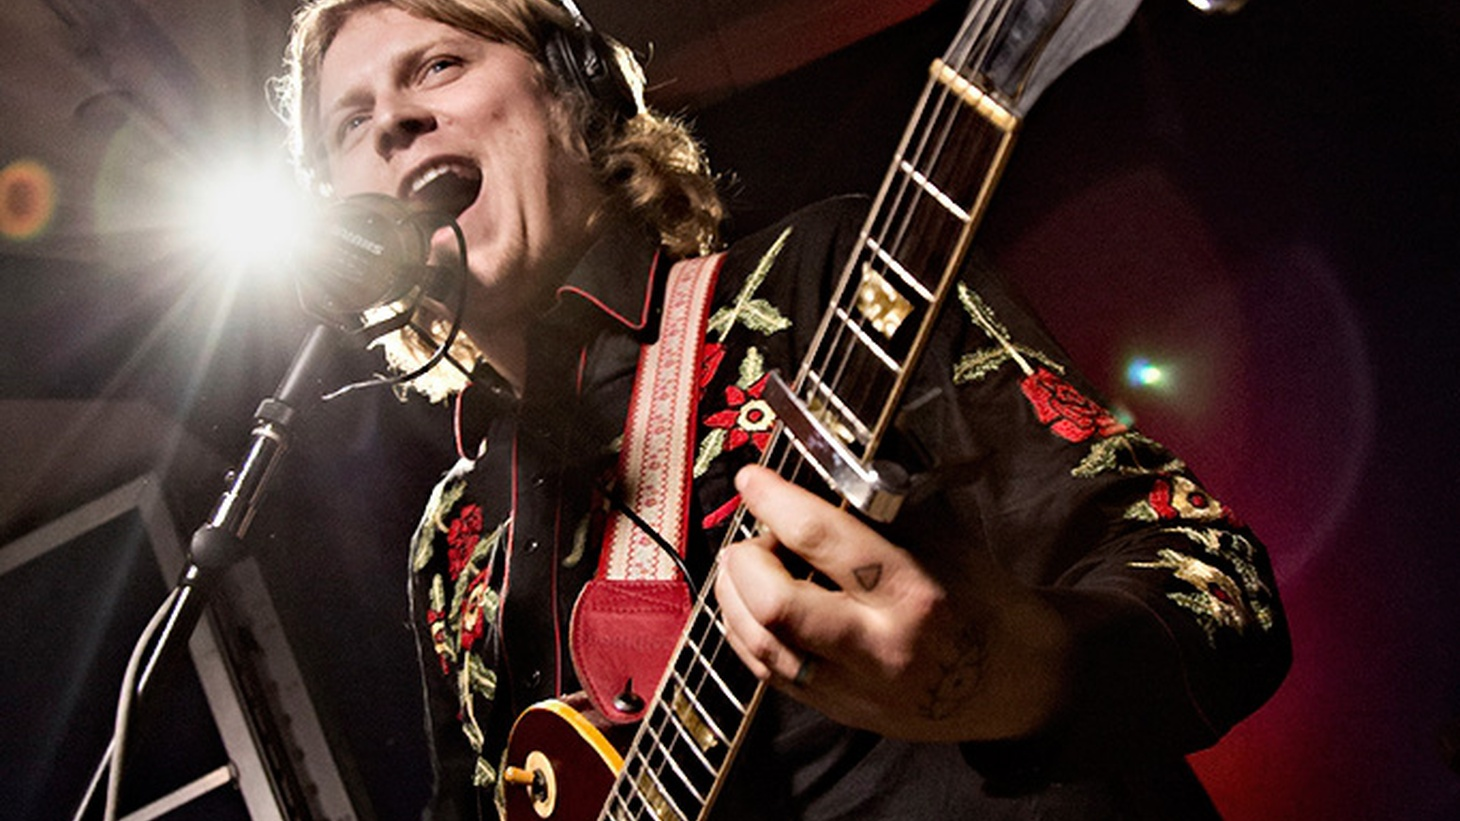 """It's a new day in the world of Ty Segall, and every truly new day means another truly great song! Captured in gleaming widescreen, """"Alta"""" is a hometown jam that Ty (with his Freedom Band) has been playing at shows all over the place this year."""